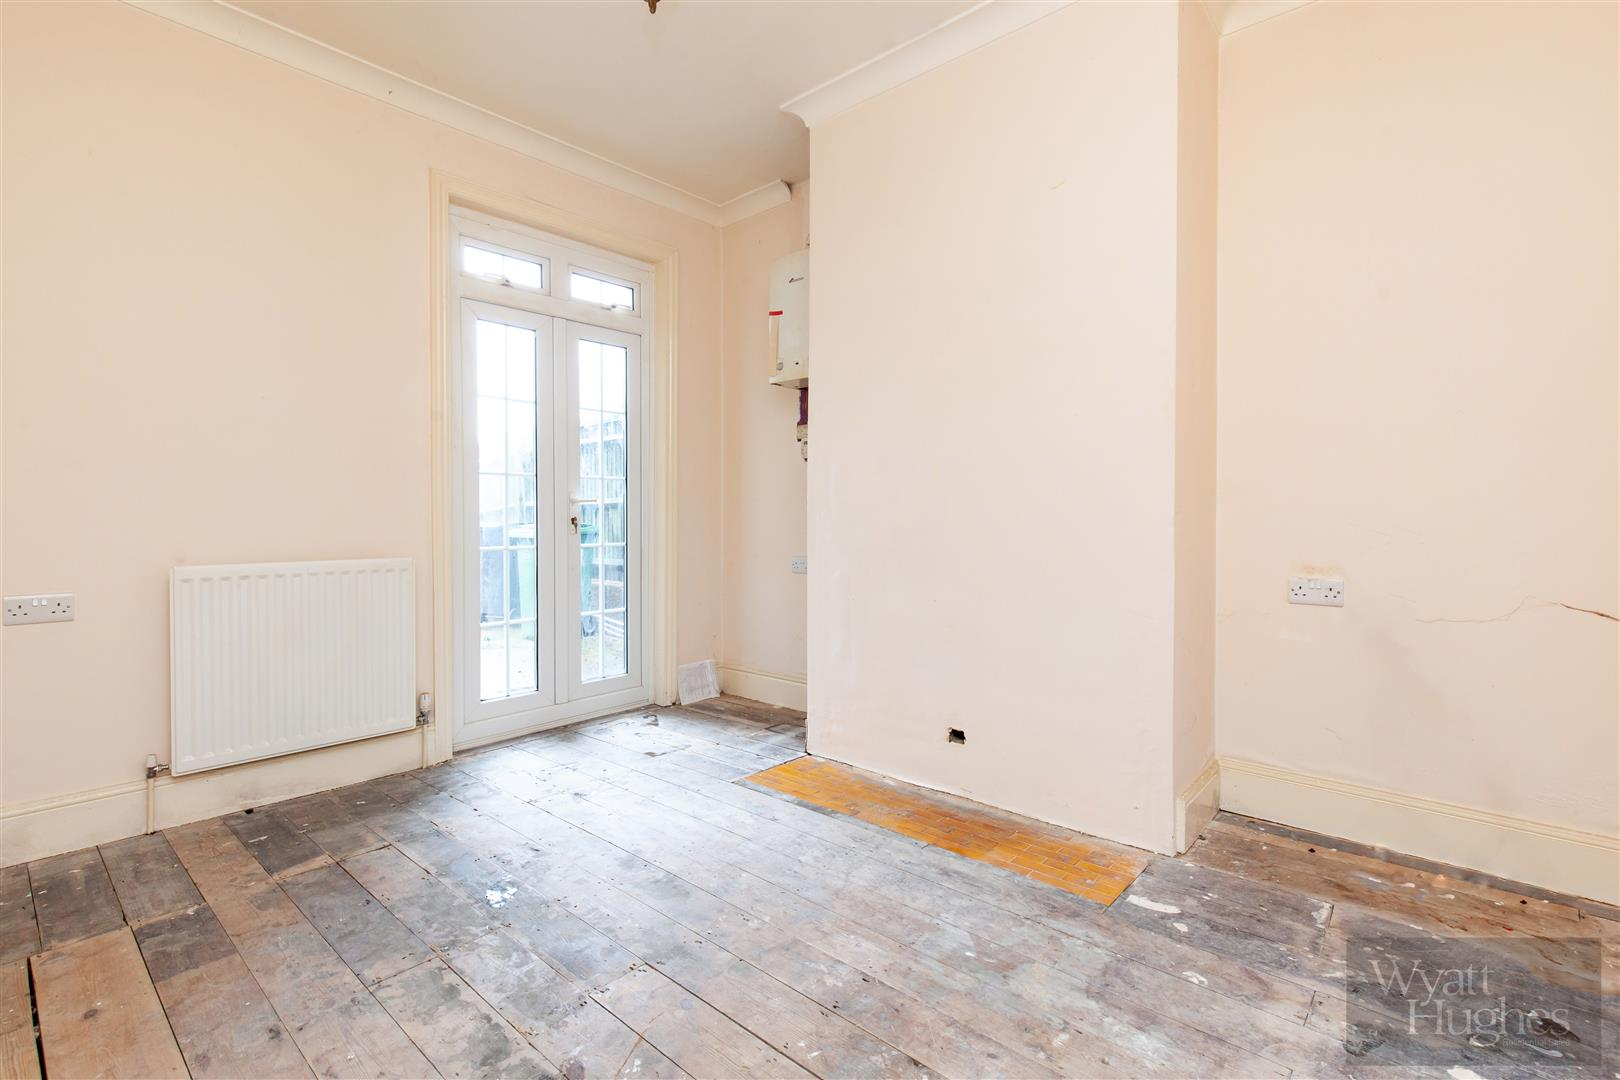 3 bed end-of-terrace-house for sale in Burry Road, St. Leonards-On-Sea 16